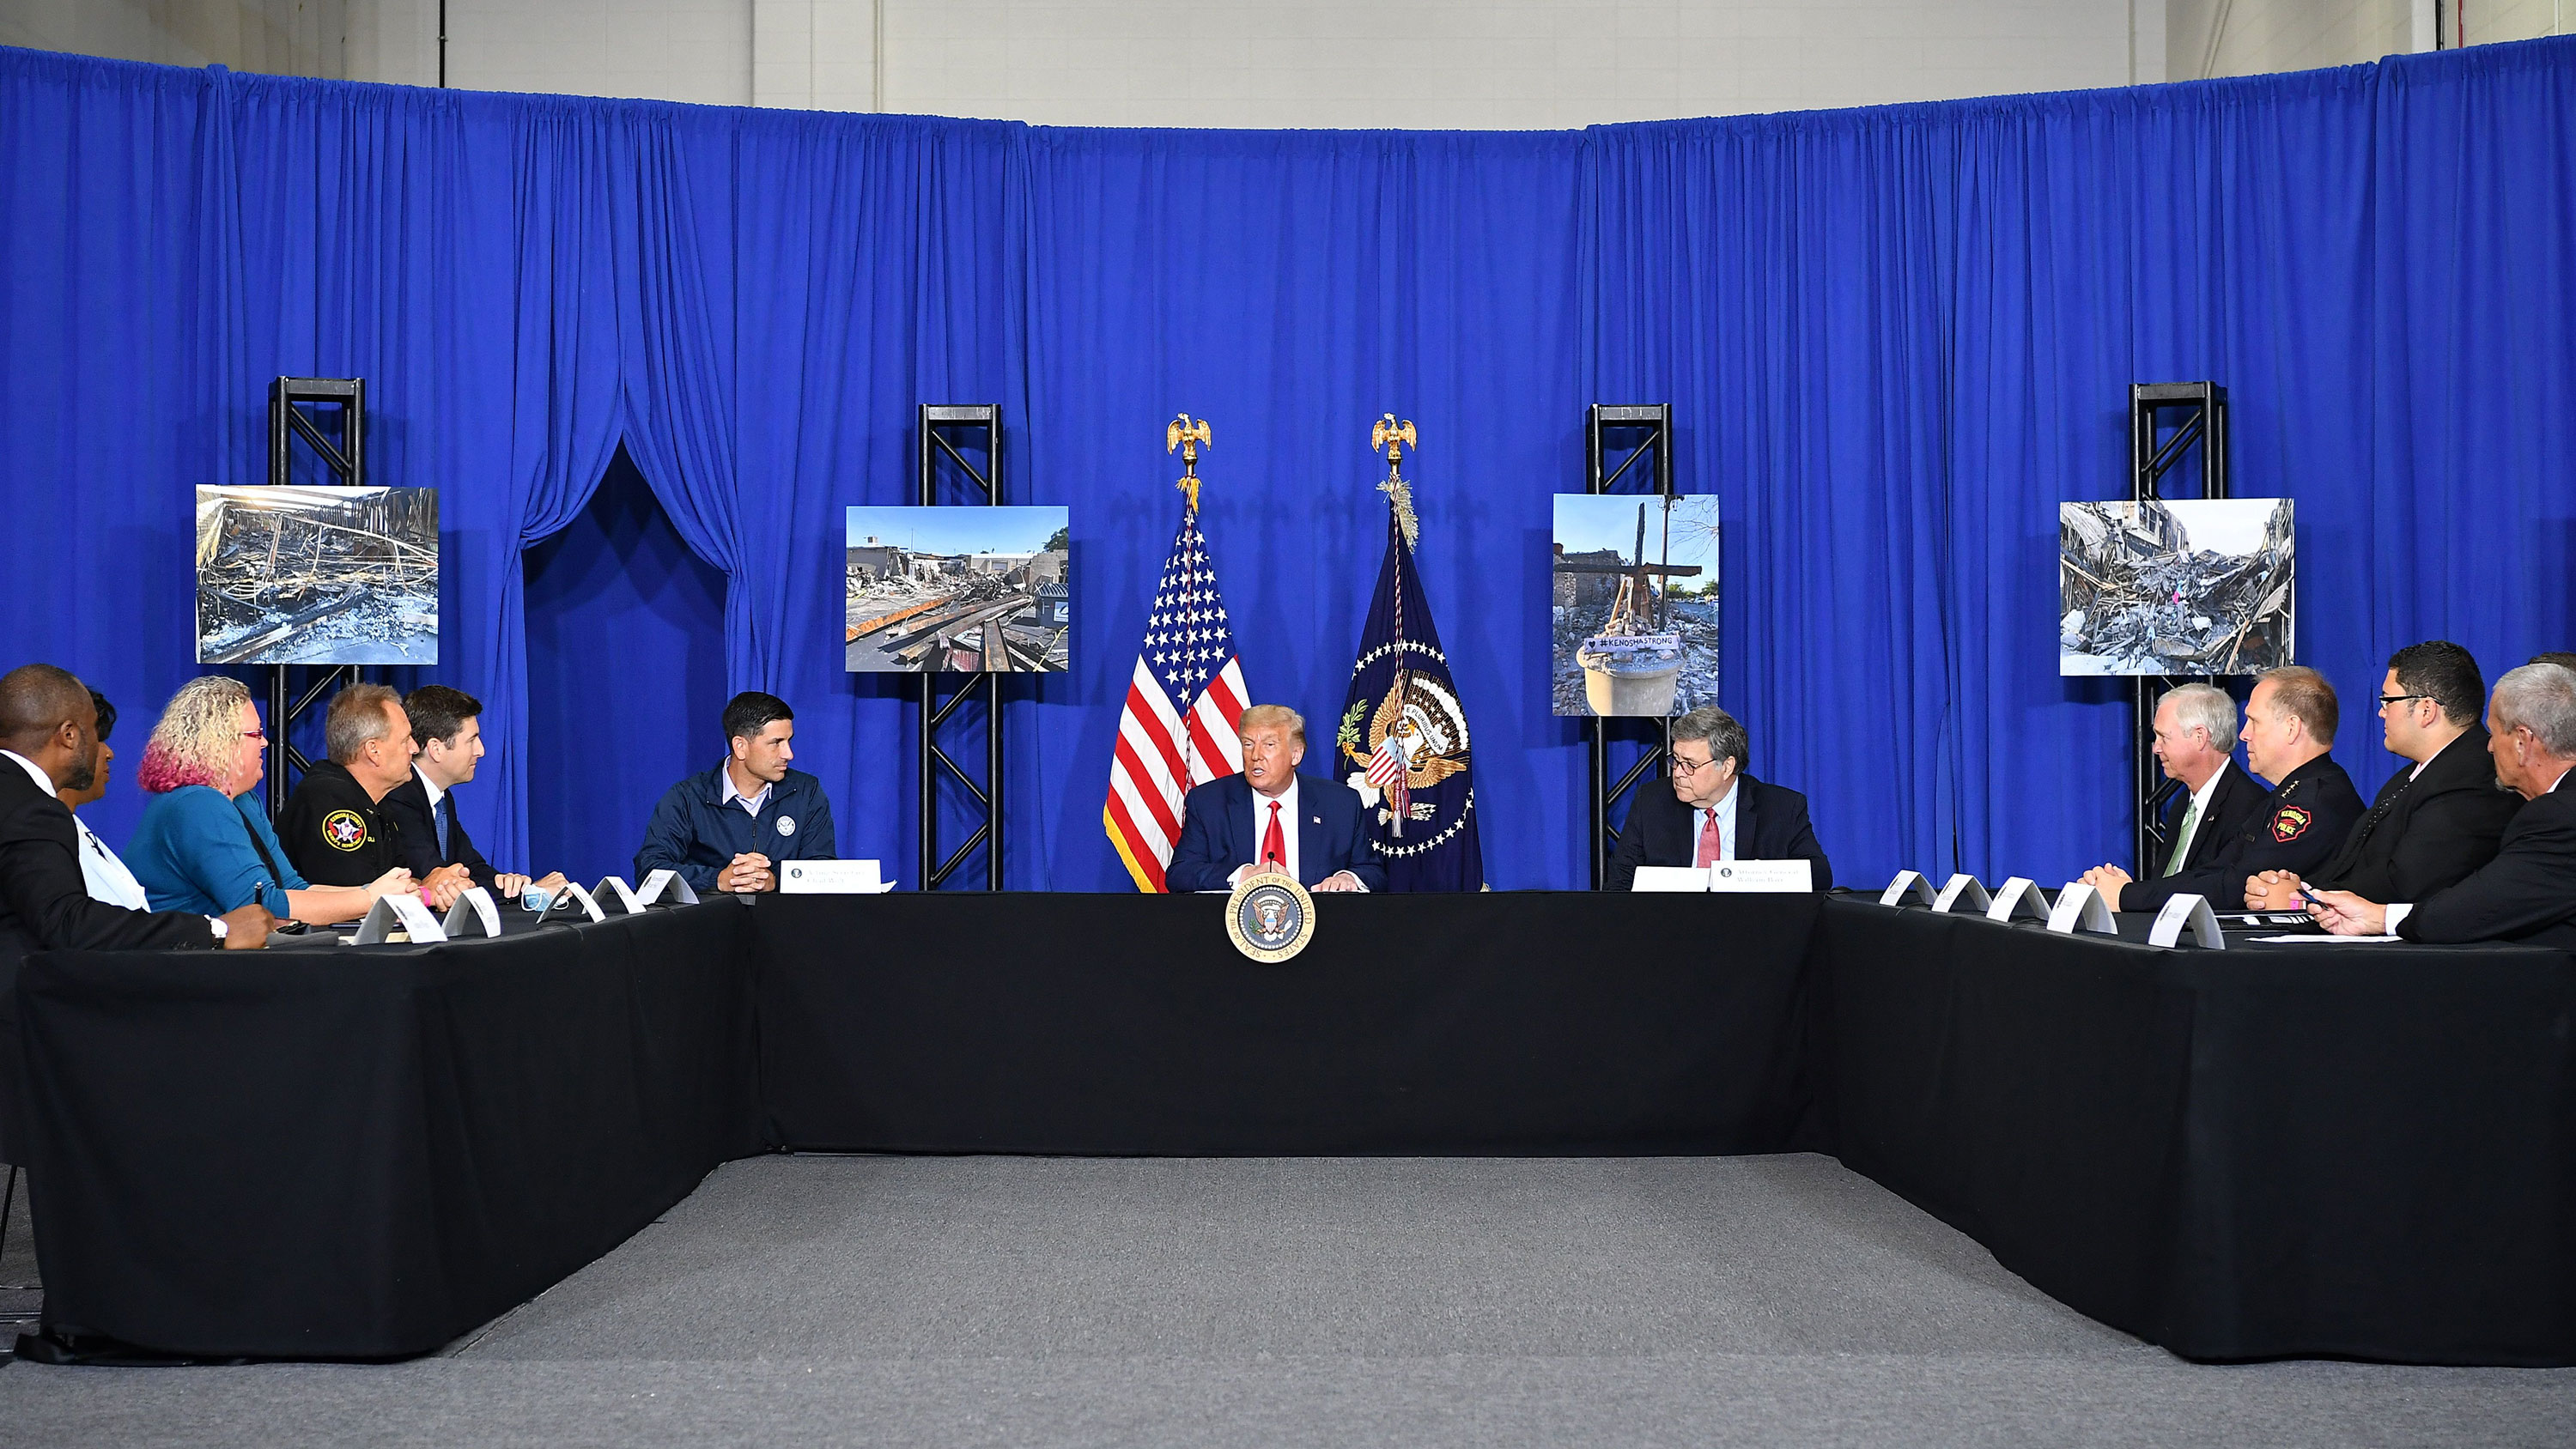 President Donald Trump participates in a roundtable discussion on community safety with other officials in Kenosha, Wisconsin, on September 1.